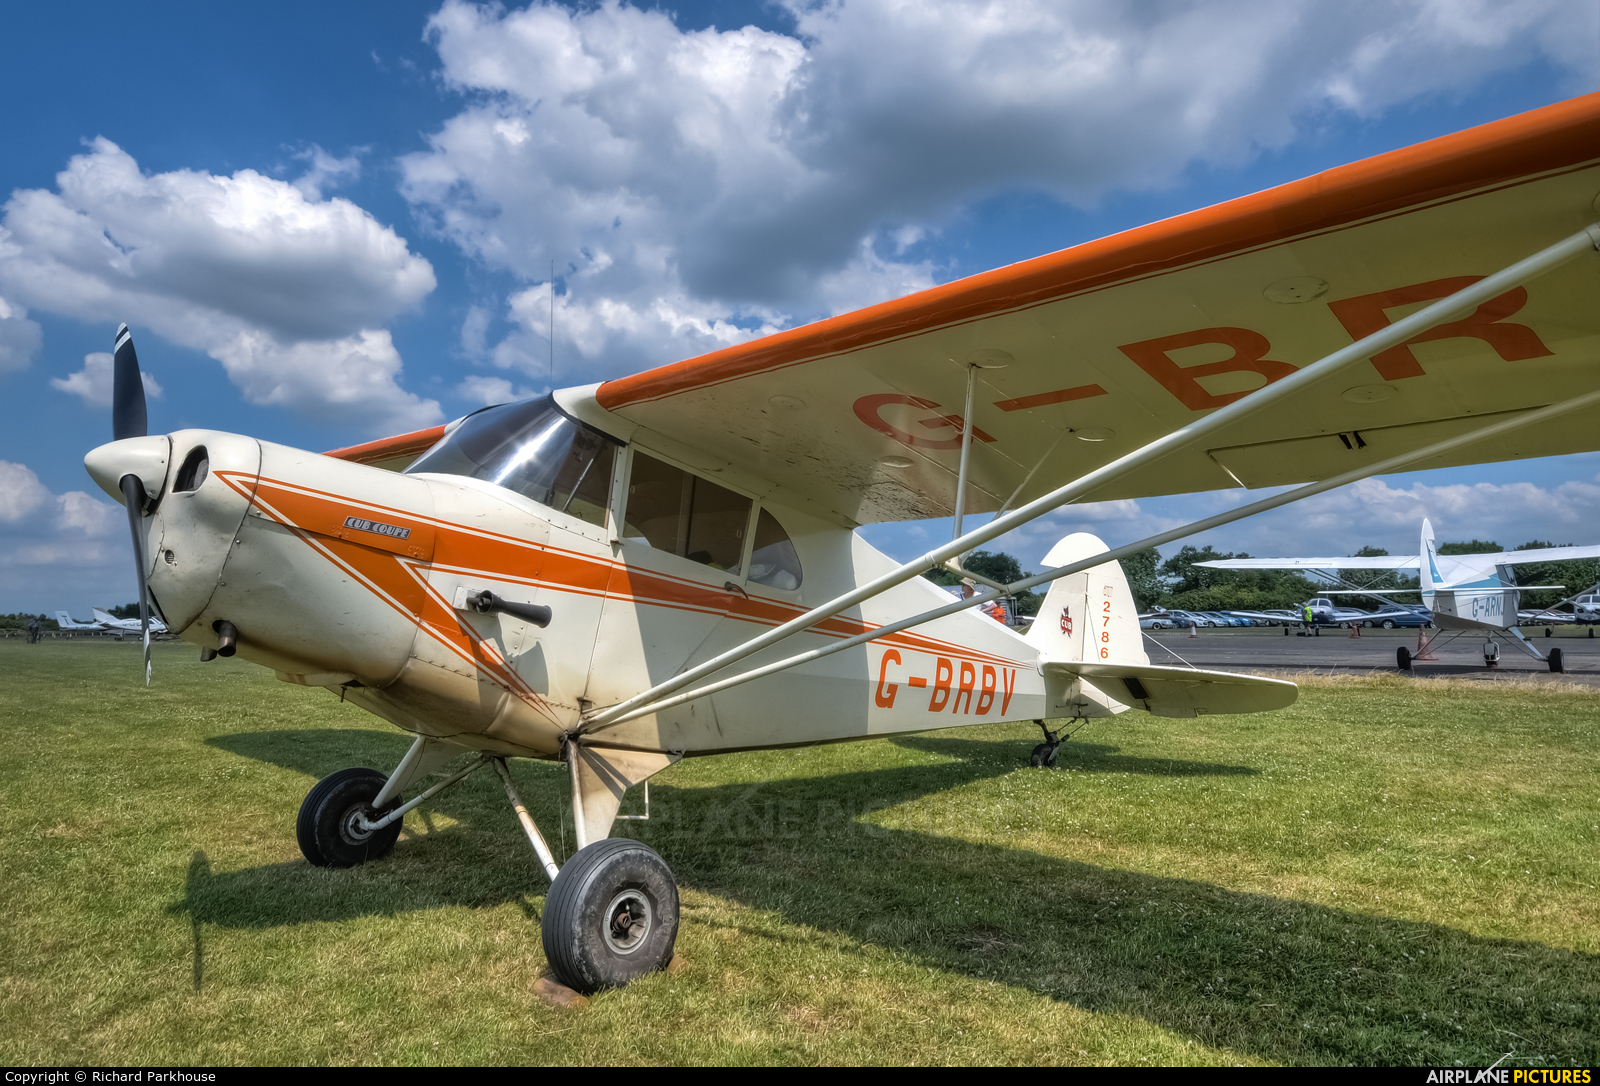 G-BRBV - Private Piper J4 Cub Cruiser at North Weald | Photo